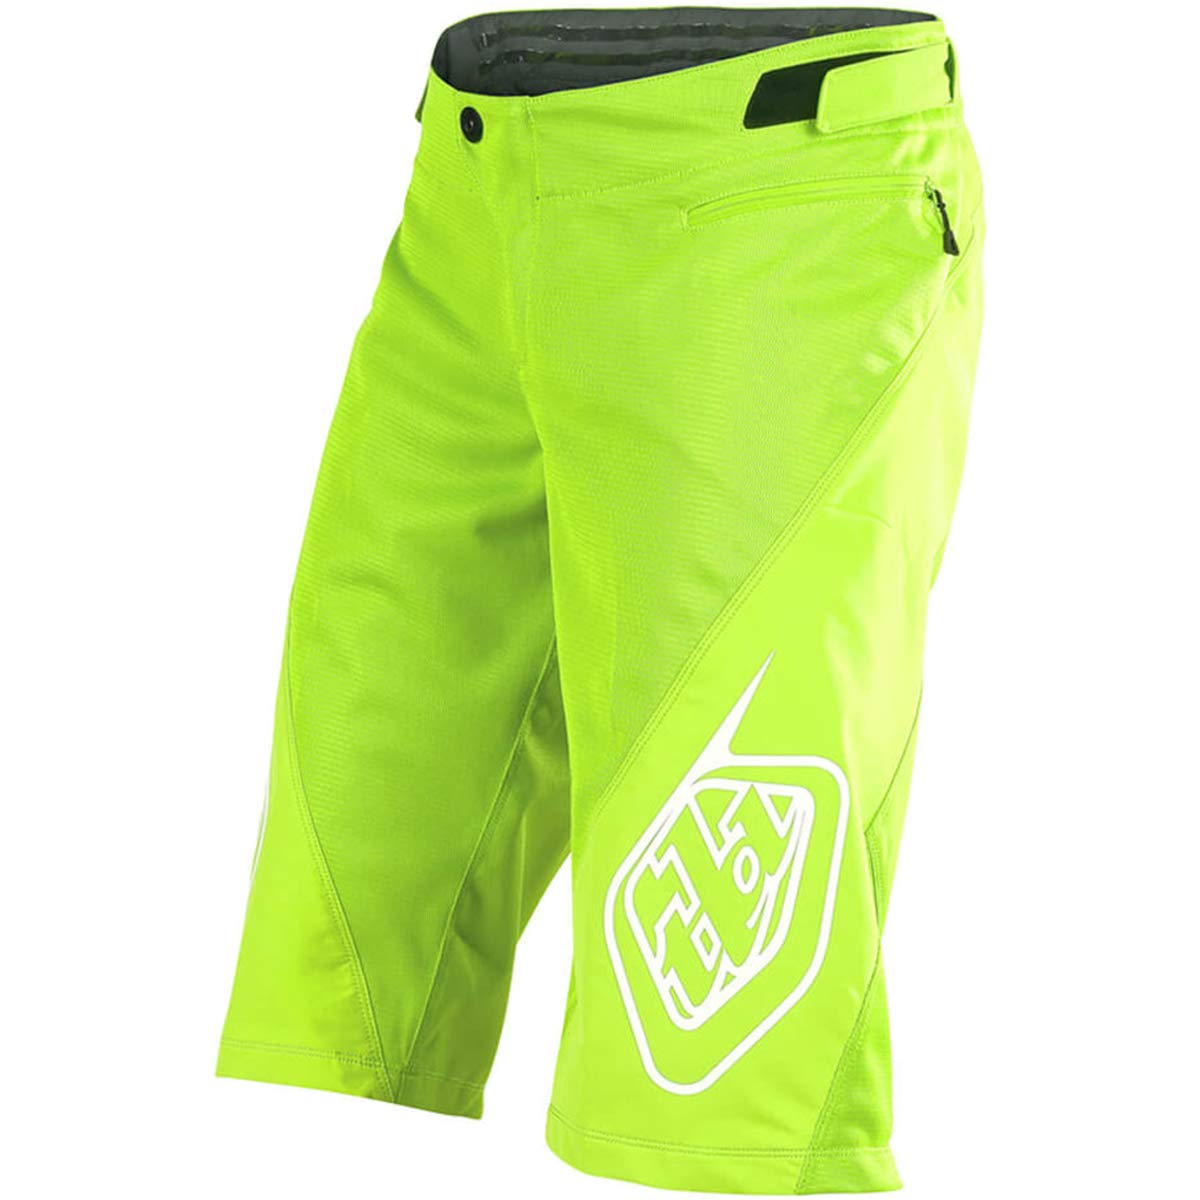 Troy Lee Designs Sprint Solid Youth Off-Road BMX Cycling Shorts - Flo Yellow / 28 by Troy Lee Designs